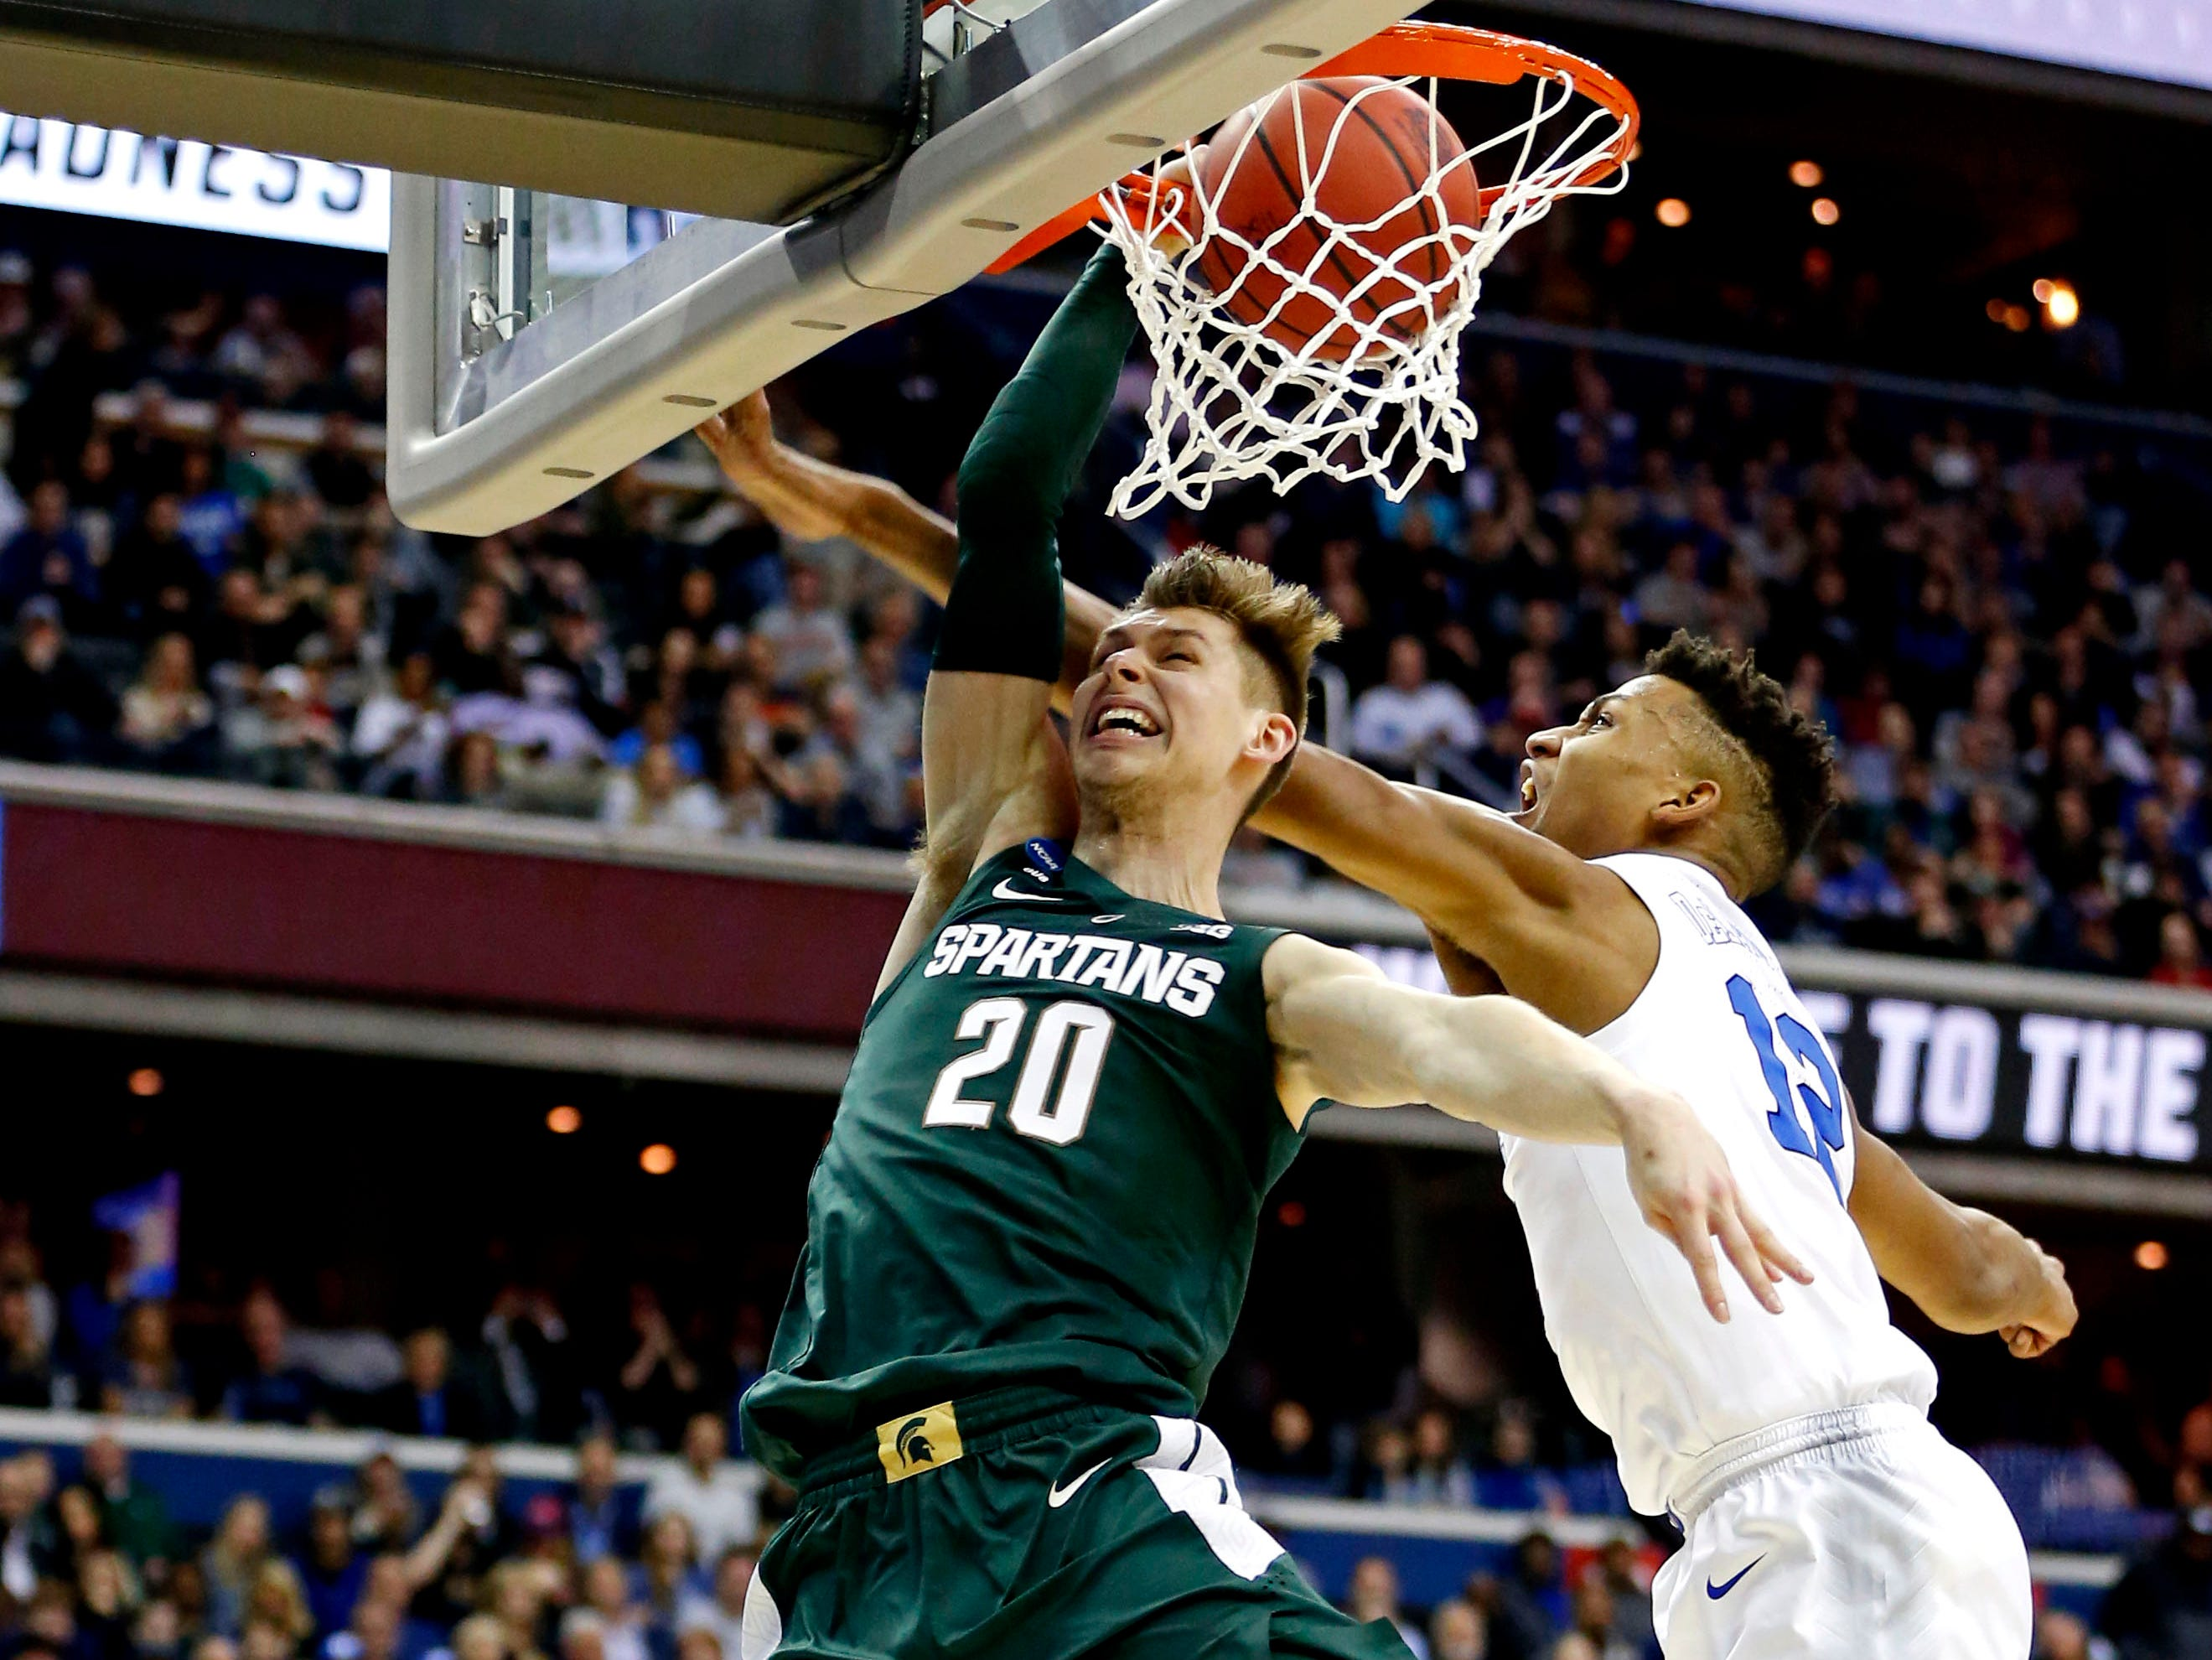 Mar 31, 2019; Washington, DC, USA; Michigan State Spartans guard Matt McQuaid (20) dunks the ball against Duke Blue Devils forward Javin DeLaurier (12) during the first half in the championship game of the east regional of the 2019 NCAA Tournament at Capital One Arena. Mandatory Credit: Amber Searls-USA TODAY Sports